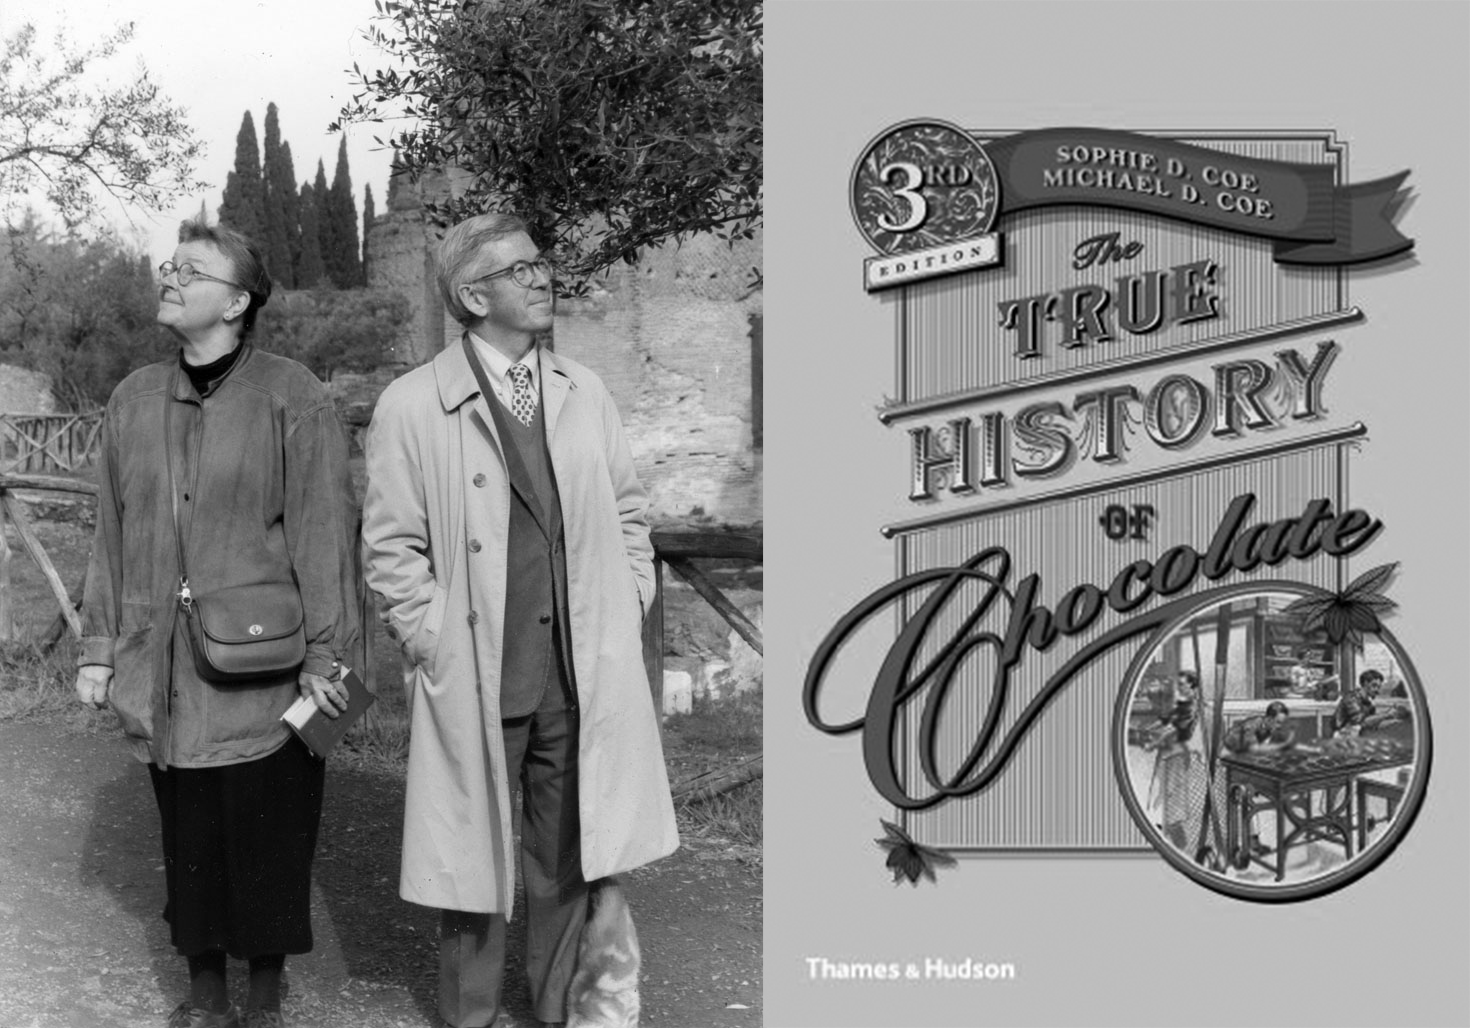 Sophie D. & Michael D. Coe on the True History of Chocolate